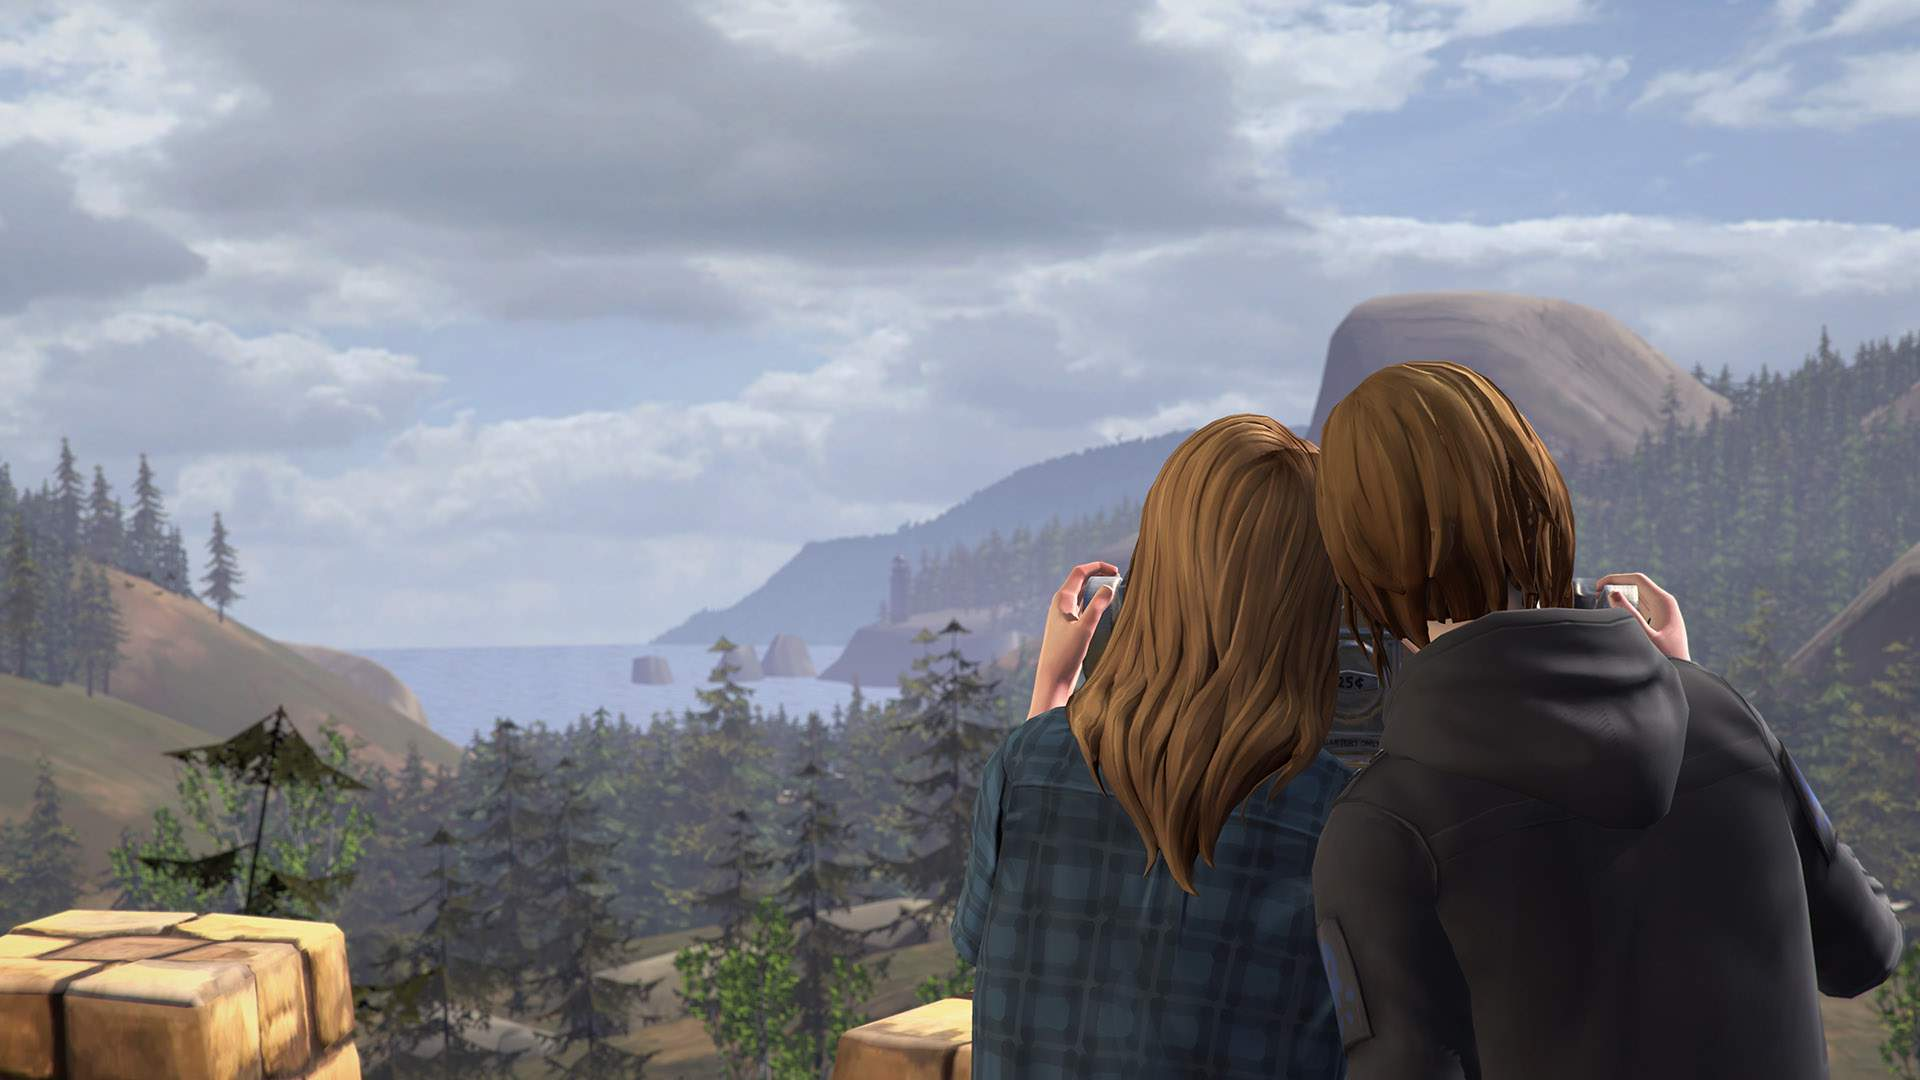 Rachel Amber and Chloe Price take in the stunning view of Overlook Park: trees, mountains, sea, and glorious sky.